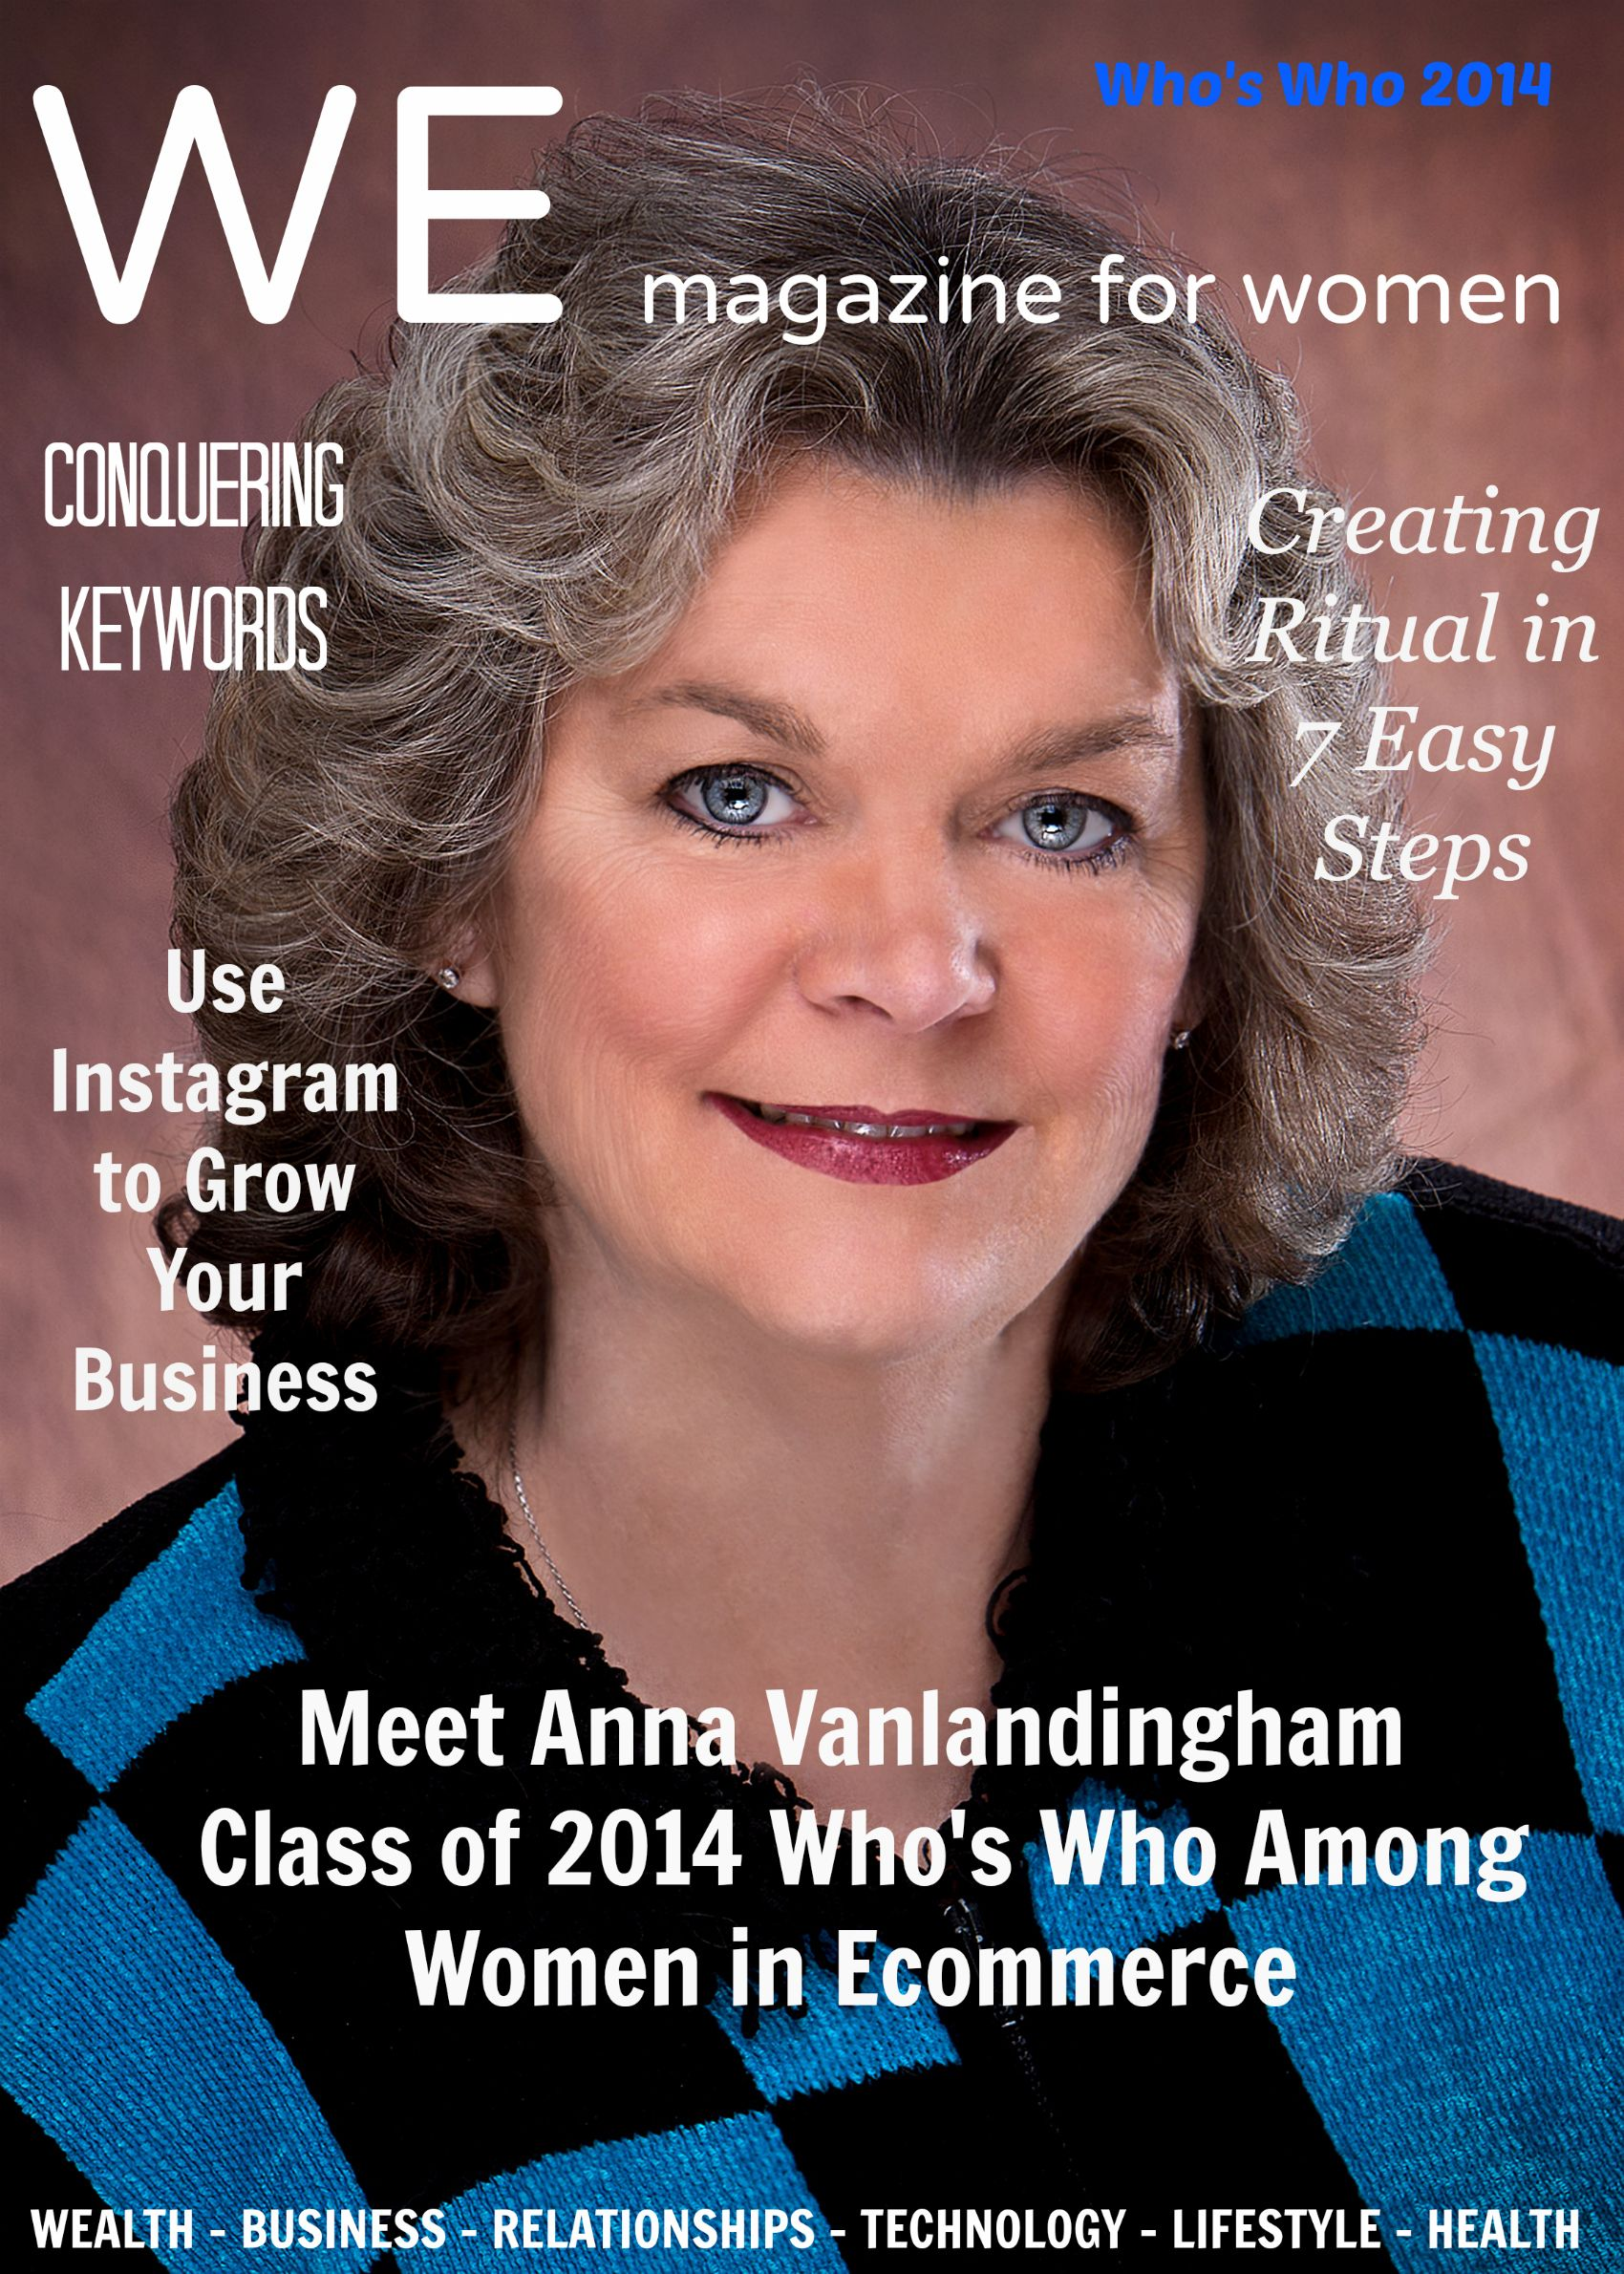 Congratulations to Anna Vanlandingham for making the list! To the Class of 2014 Who's Who among Women in Ecommerce... WE are so proud of you! See all the amazing women here: bit.ly/whoswho2014